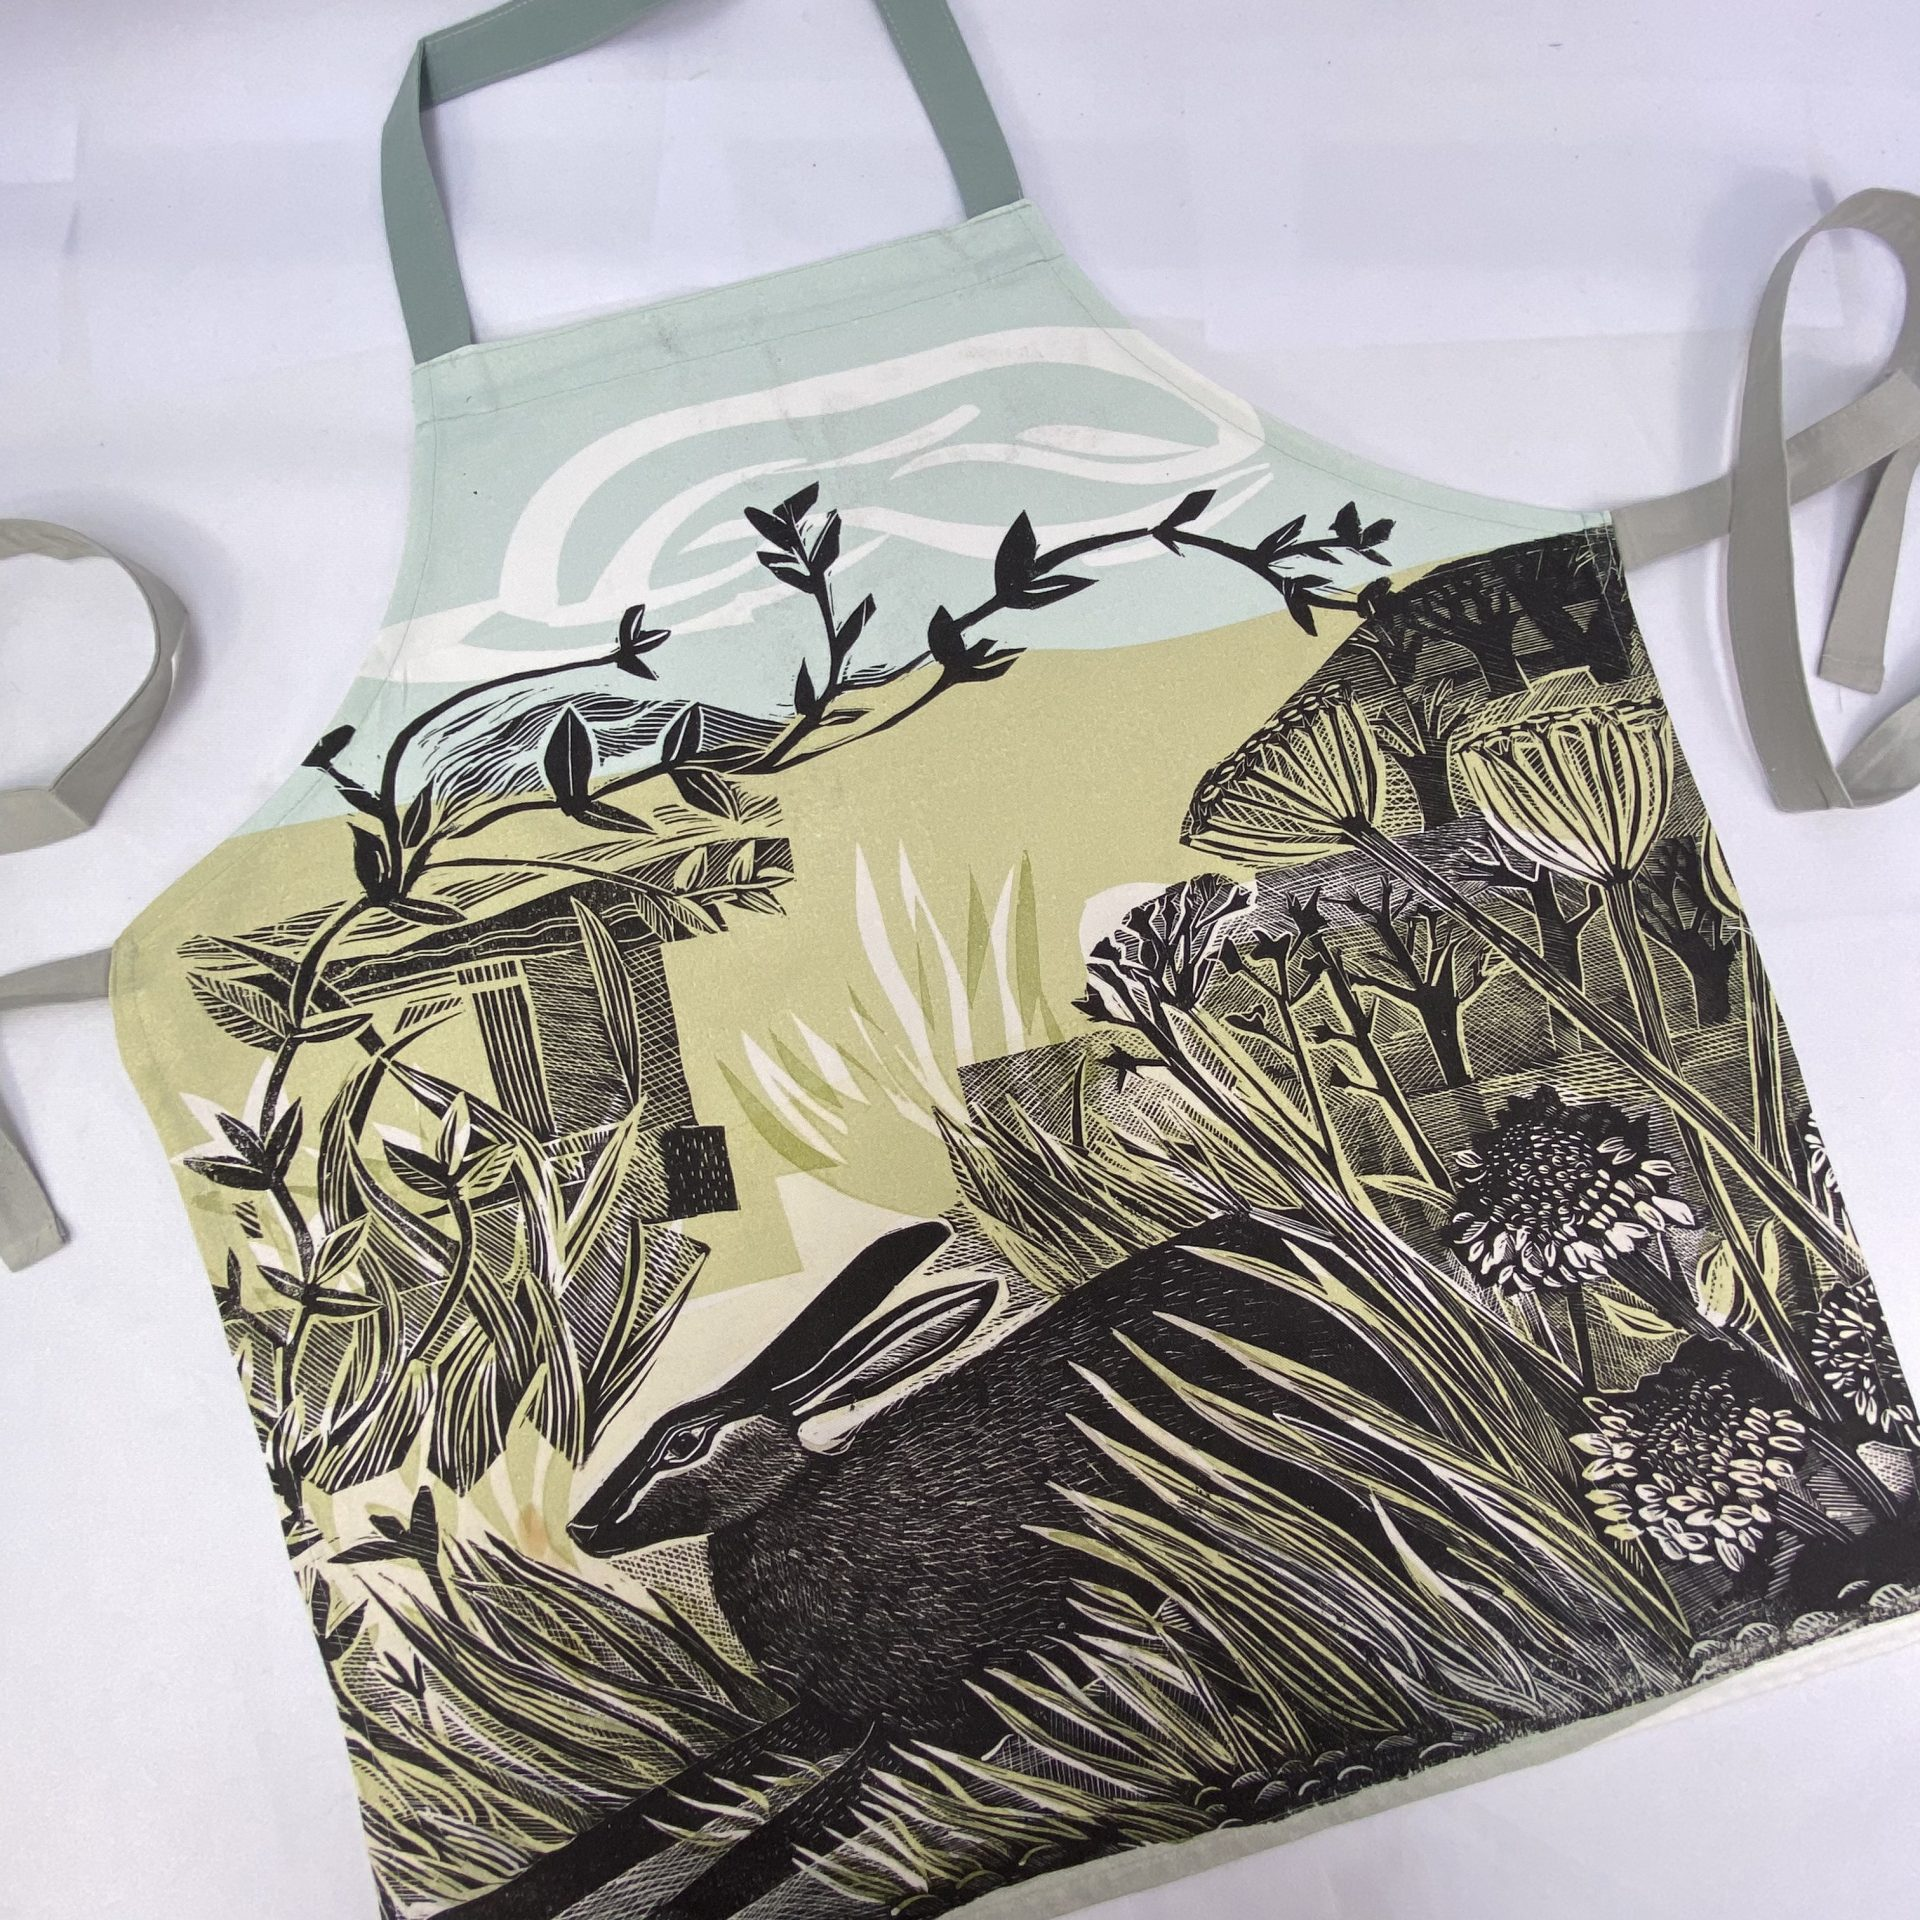 Screen printed textile merchandise by Paul Bristow